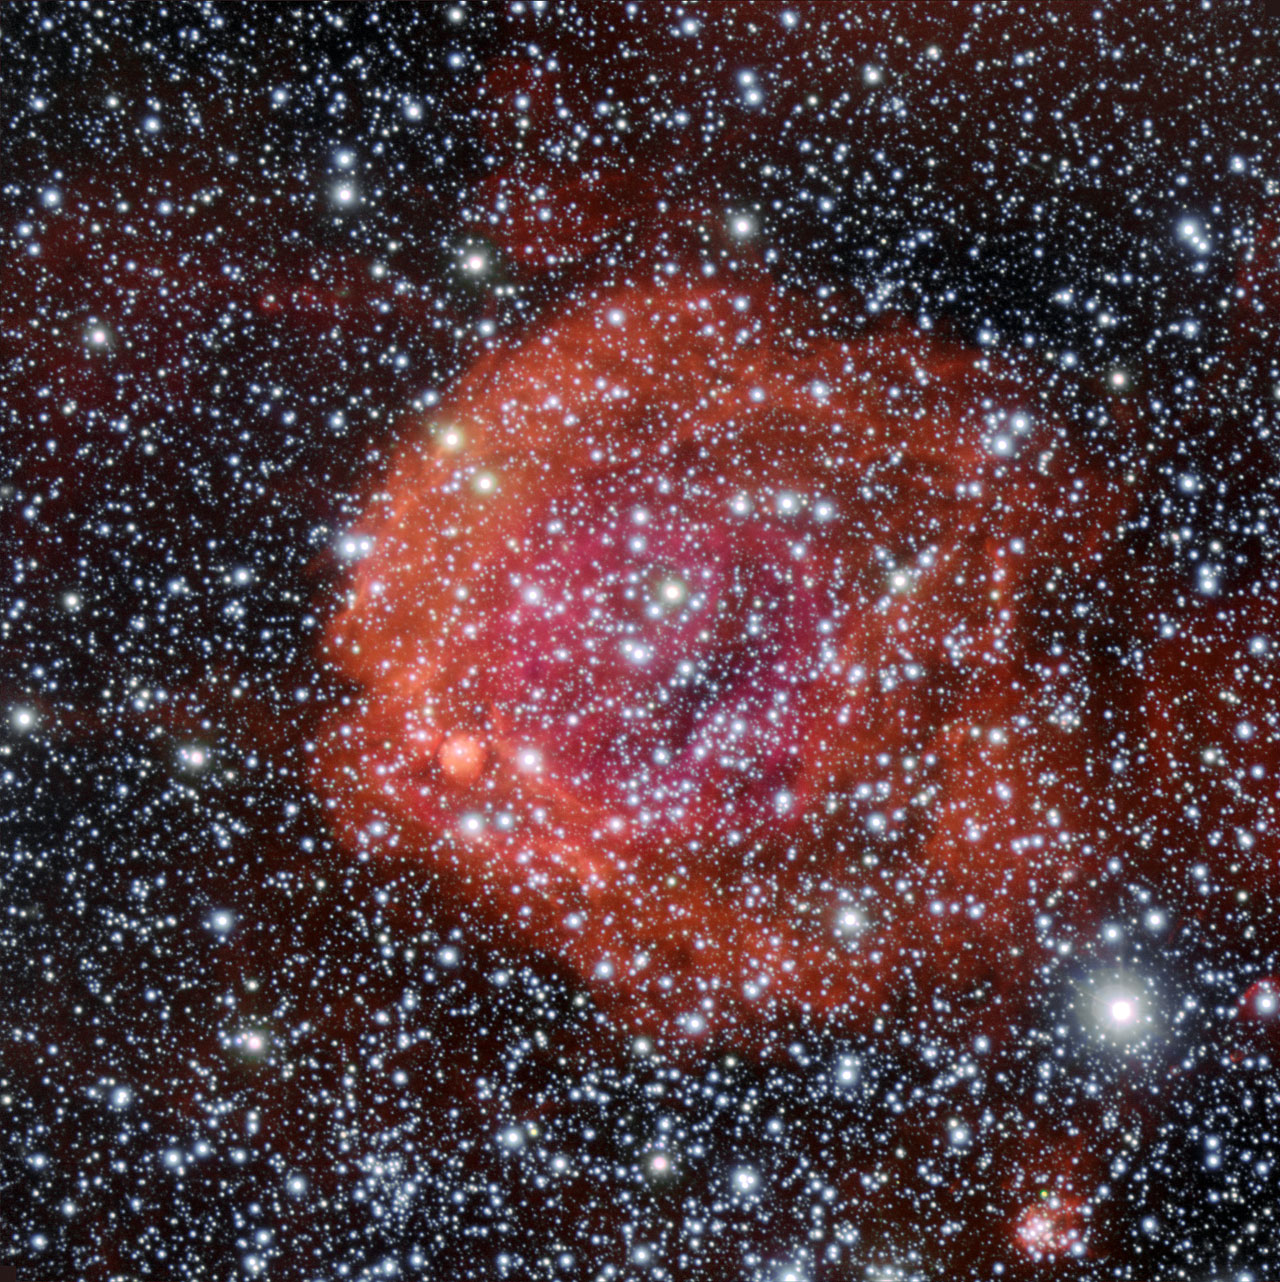 Cosmic Rose Blooms in Star Cluster Photo